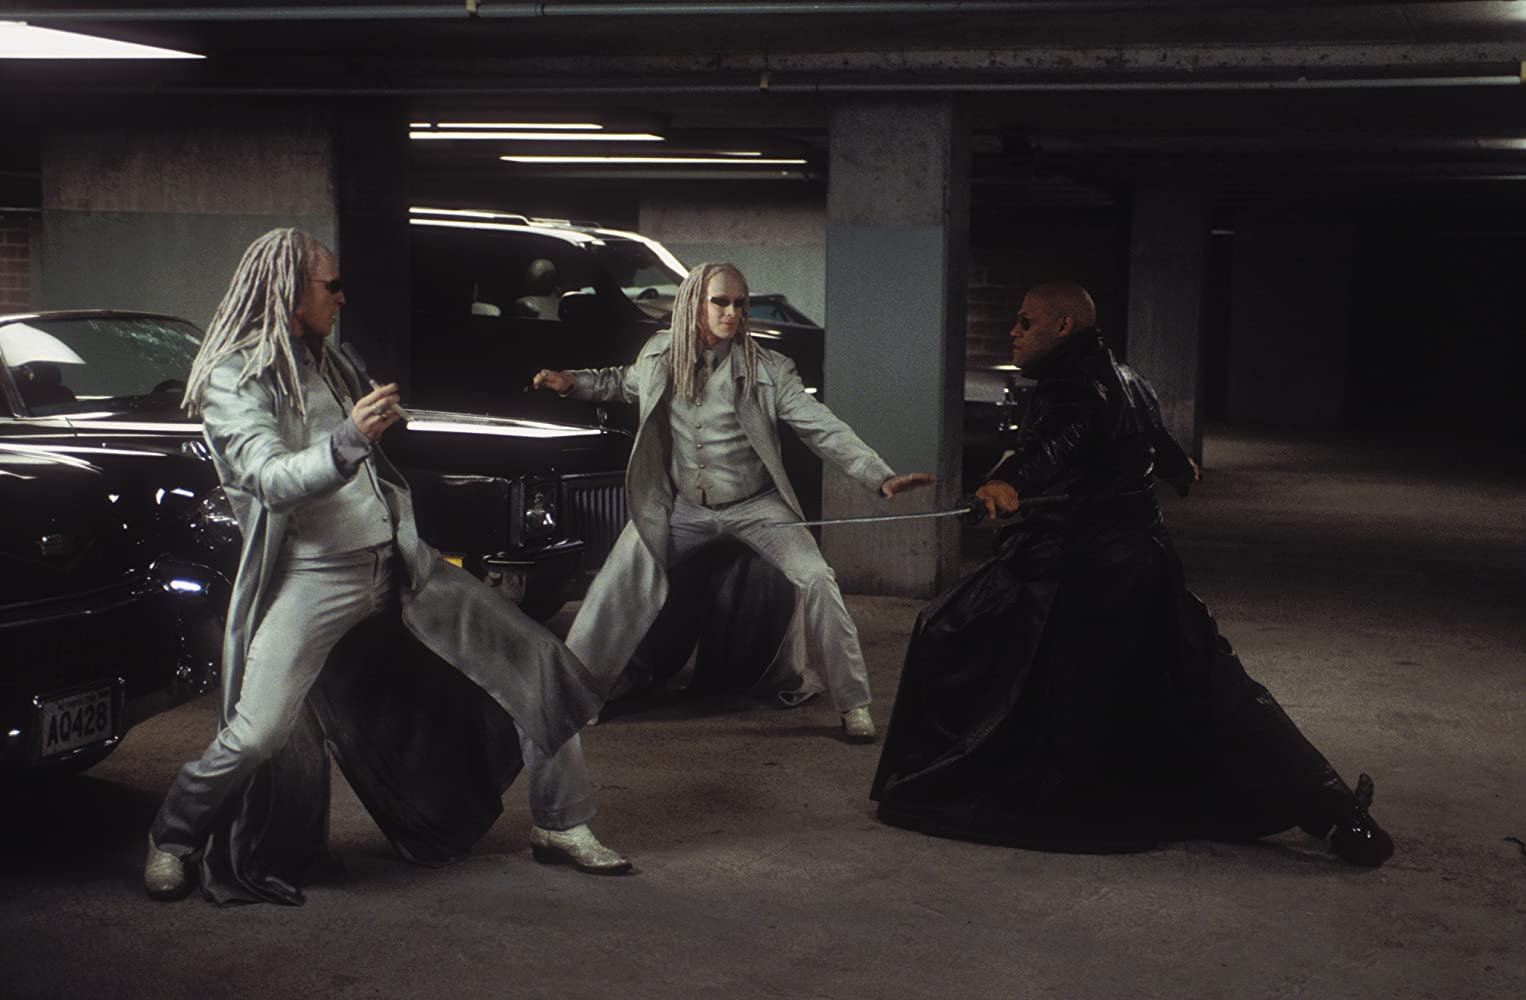 Laurence Fishburne, Adrian Rayment, and Neil Rayment in The Matrix Reloaded (2003)